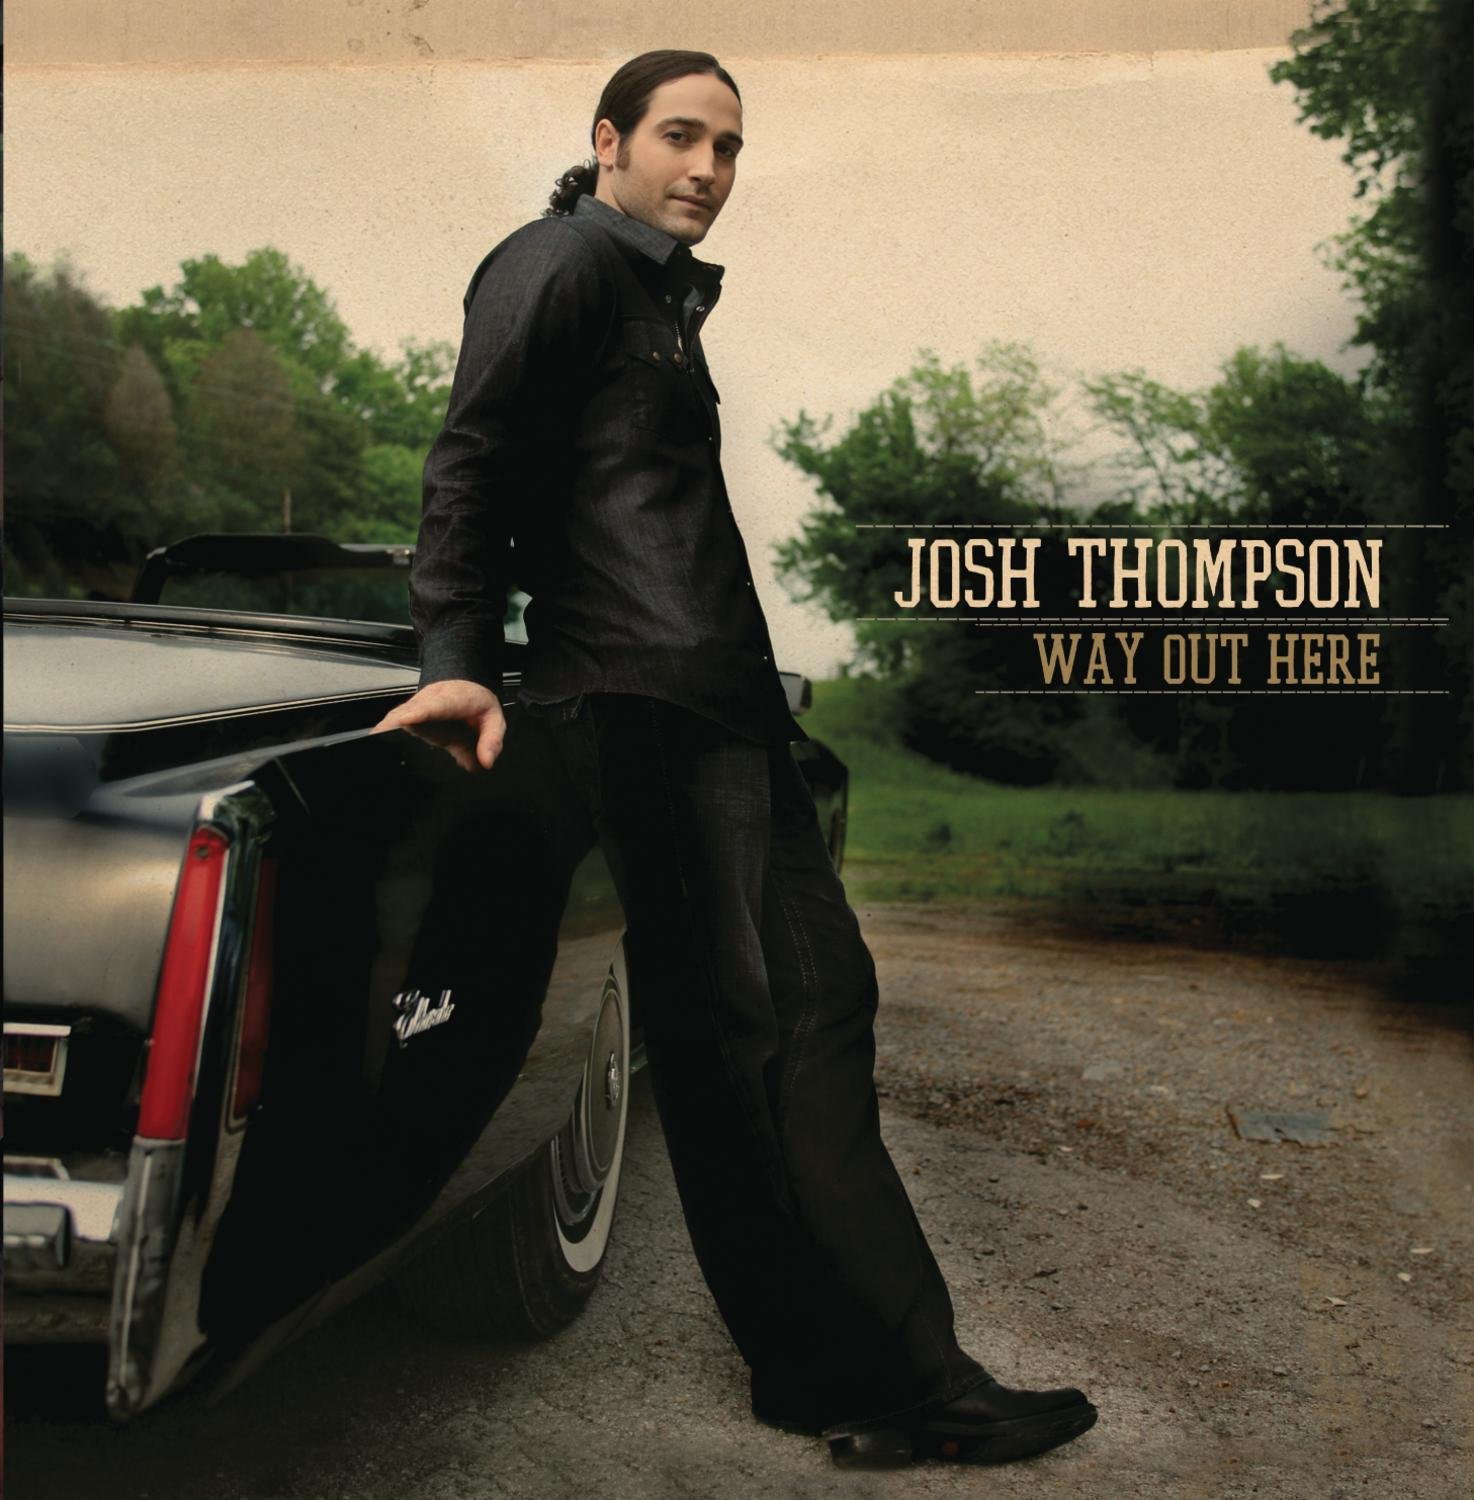 Way Out Here – Josh Thompson